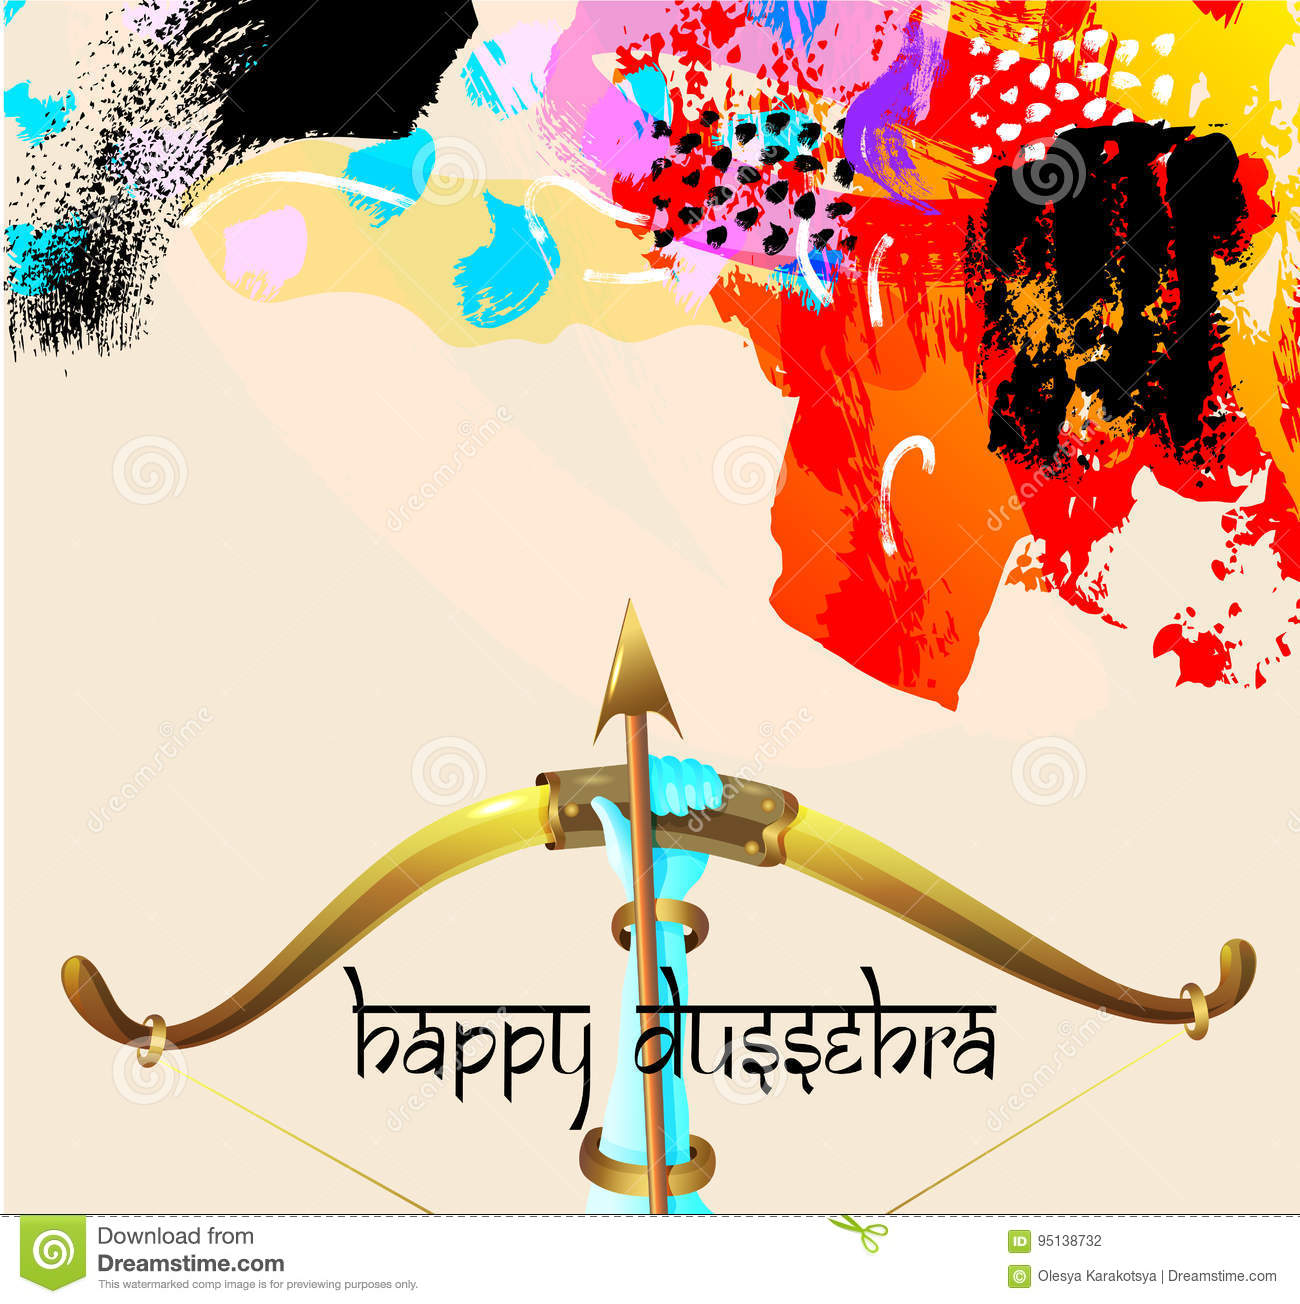 Happy dussehra greeting card with krishna bow stock vector happy dussehra greeting card with krishna bow kristyandbryce Choice Image